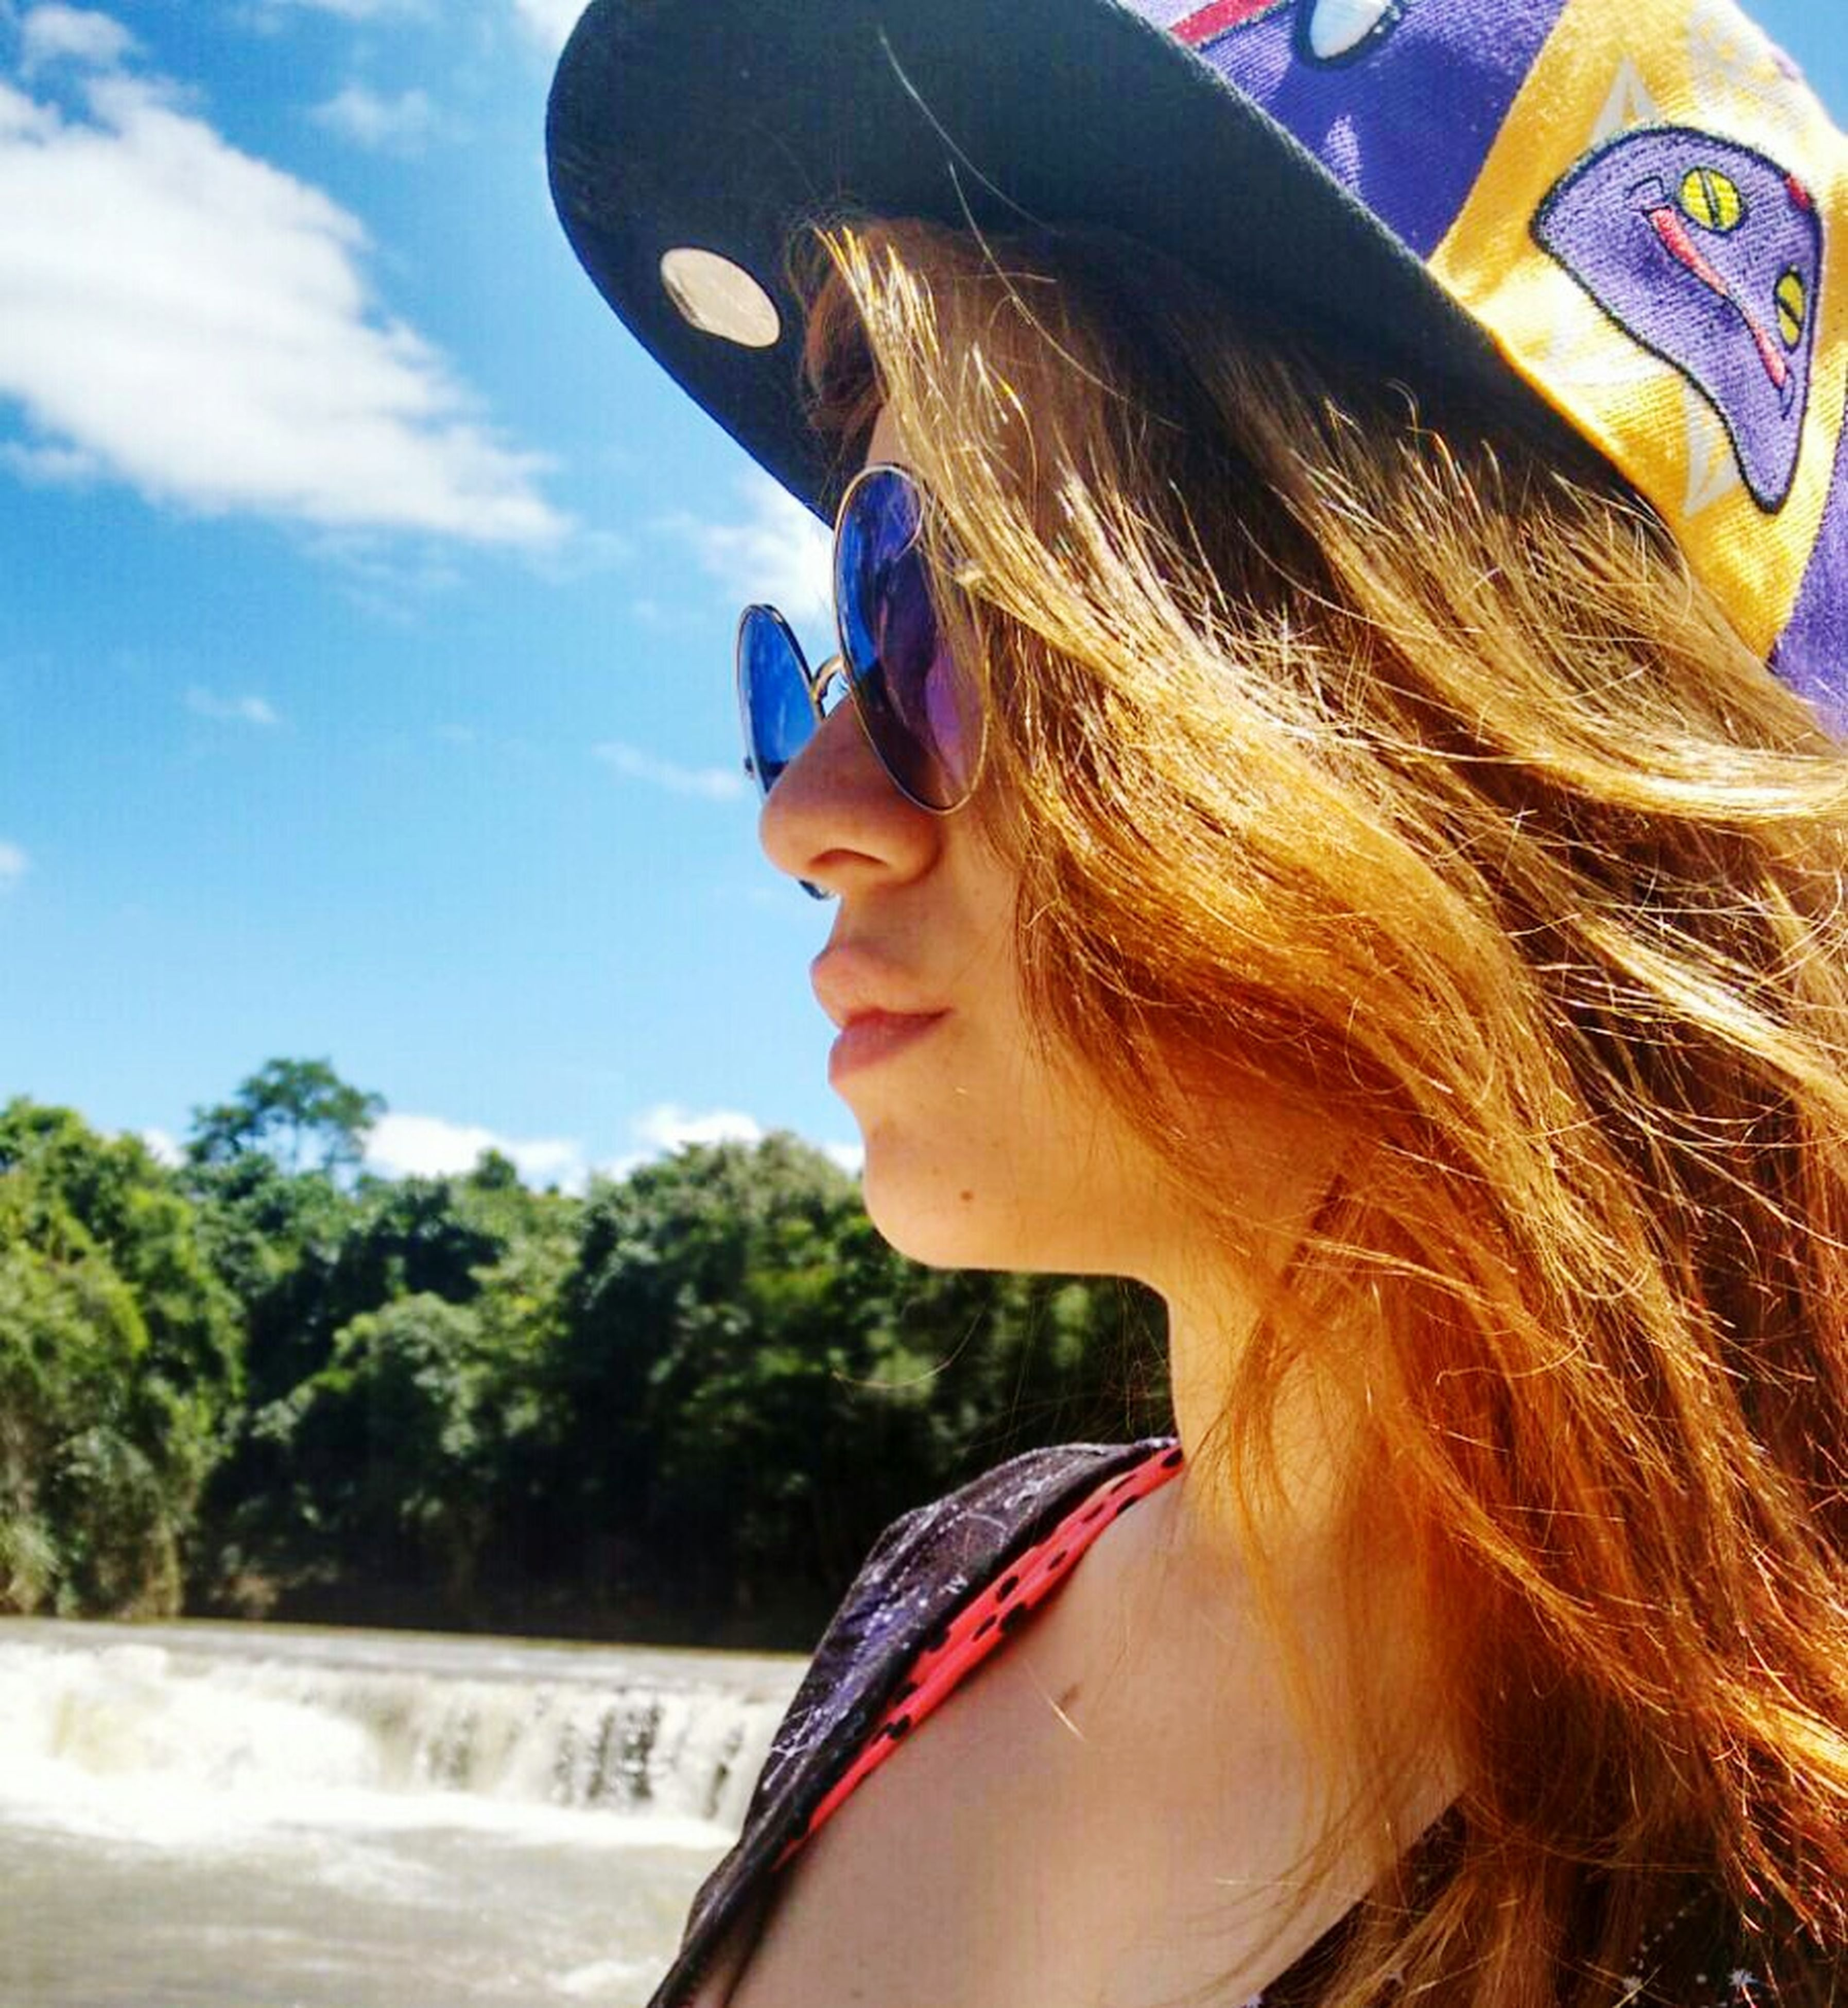 lifestyles, leisure activity, young adult, sunglasses, person, headshot, young women, close-up, day, part of, holding, cropped, tree, long hair, transportation, outdoors, sunlight, side view